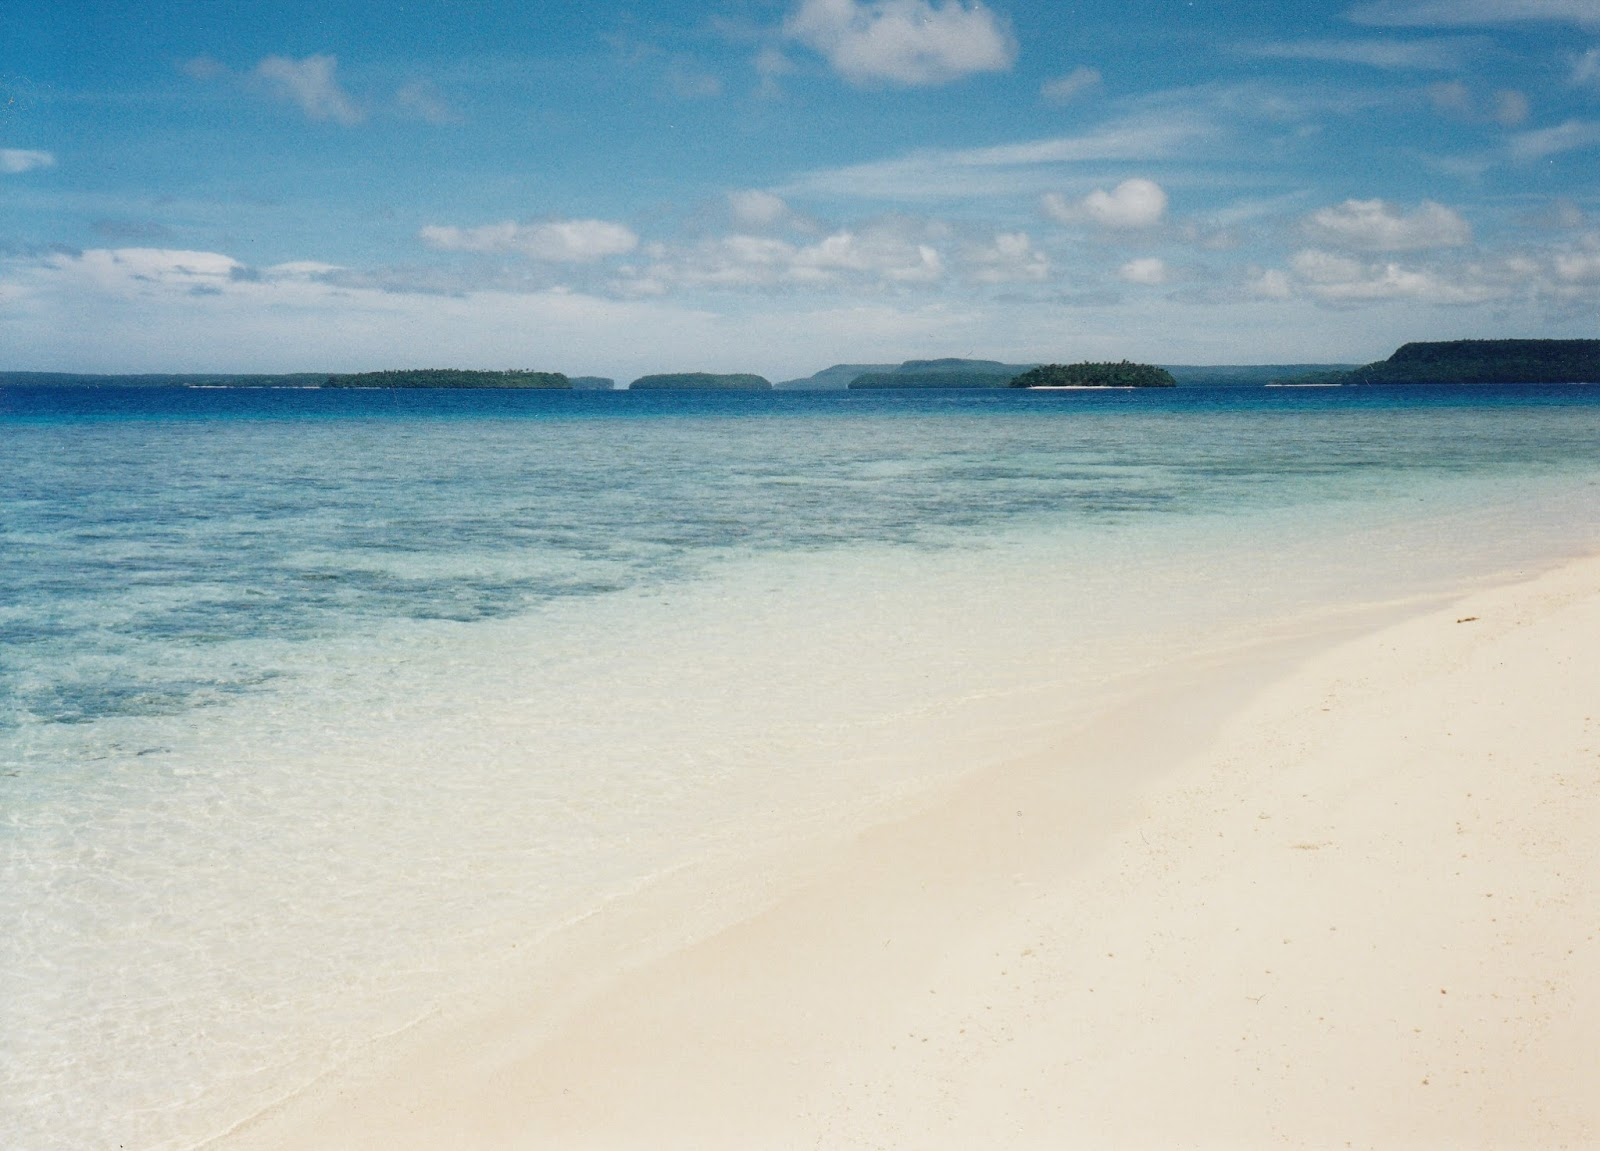 Tonga travel experiences bring incredible white sand beaches